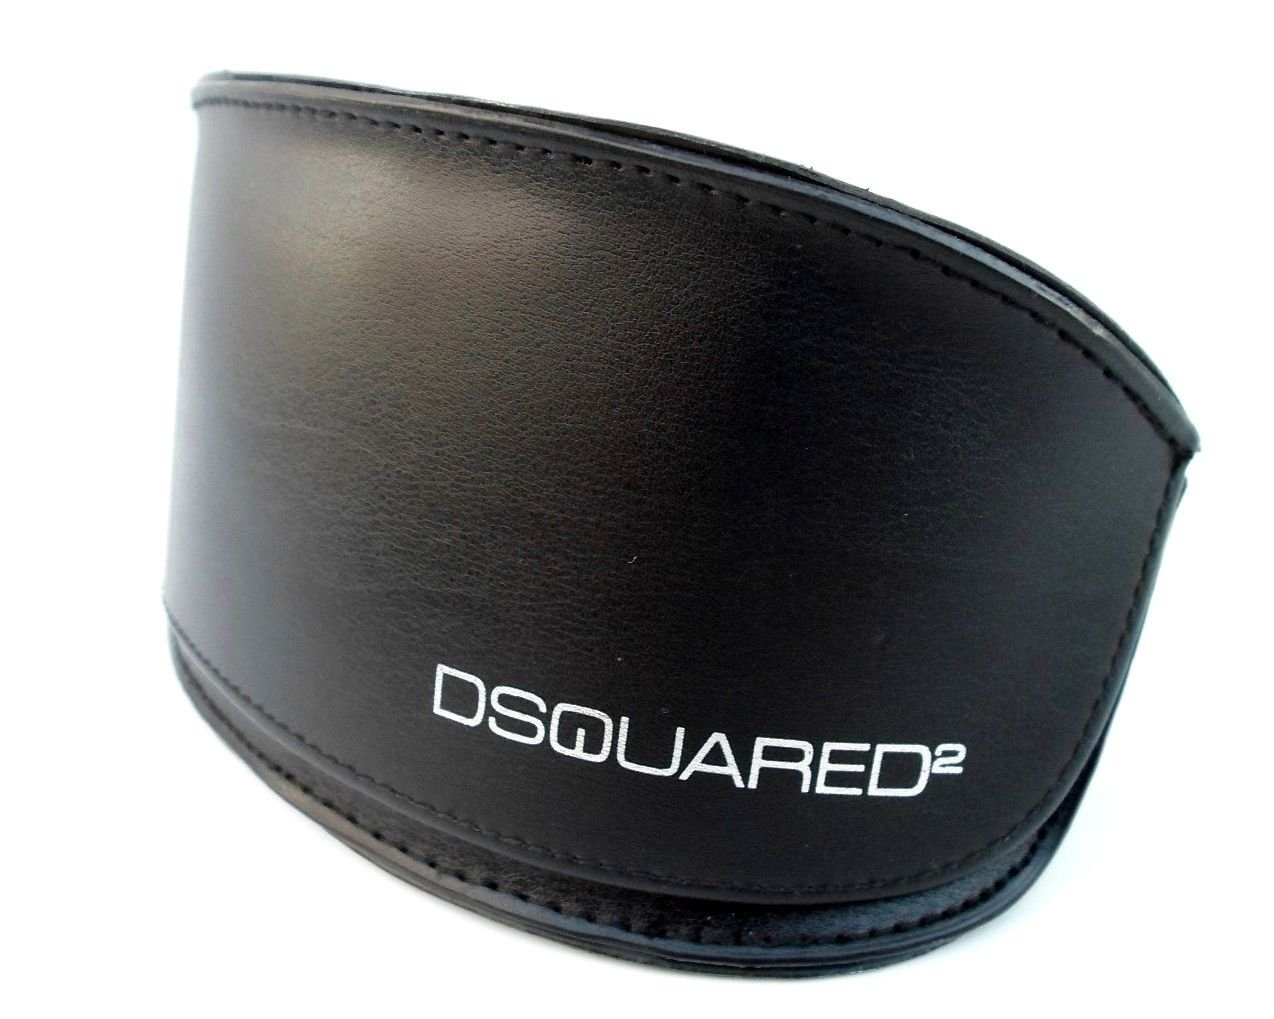 DSQUARED2 Black With Silver Lining UNISEX Sunglasses Case